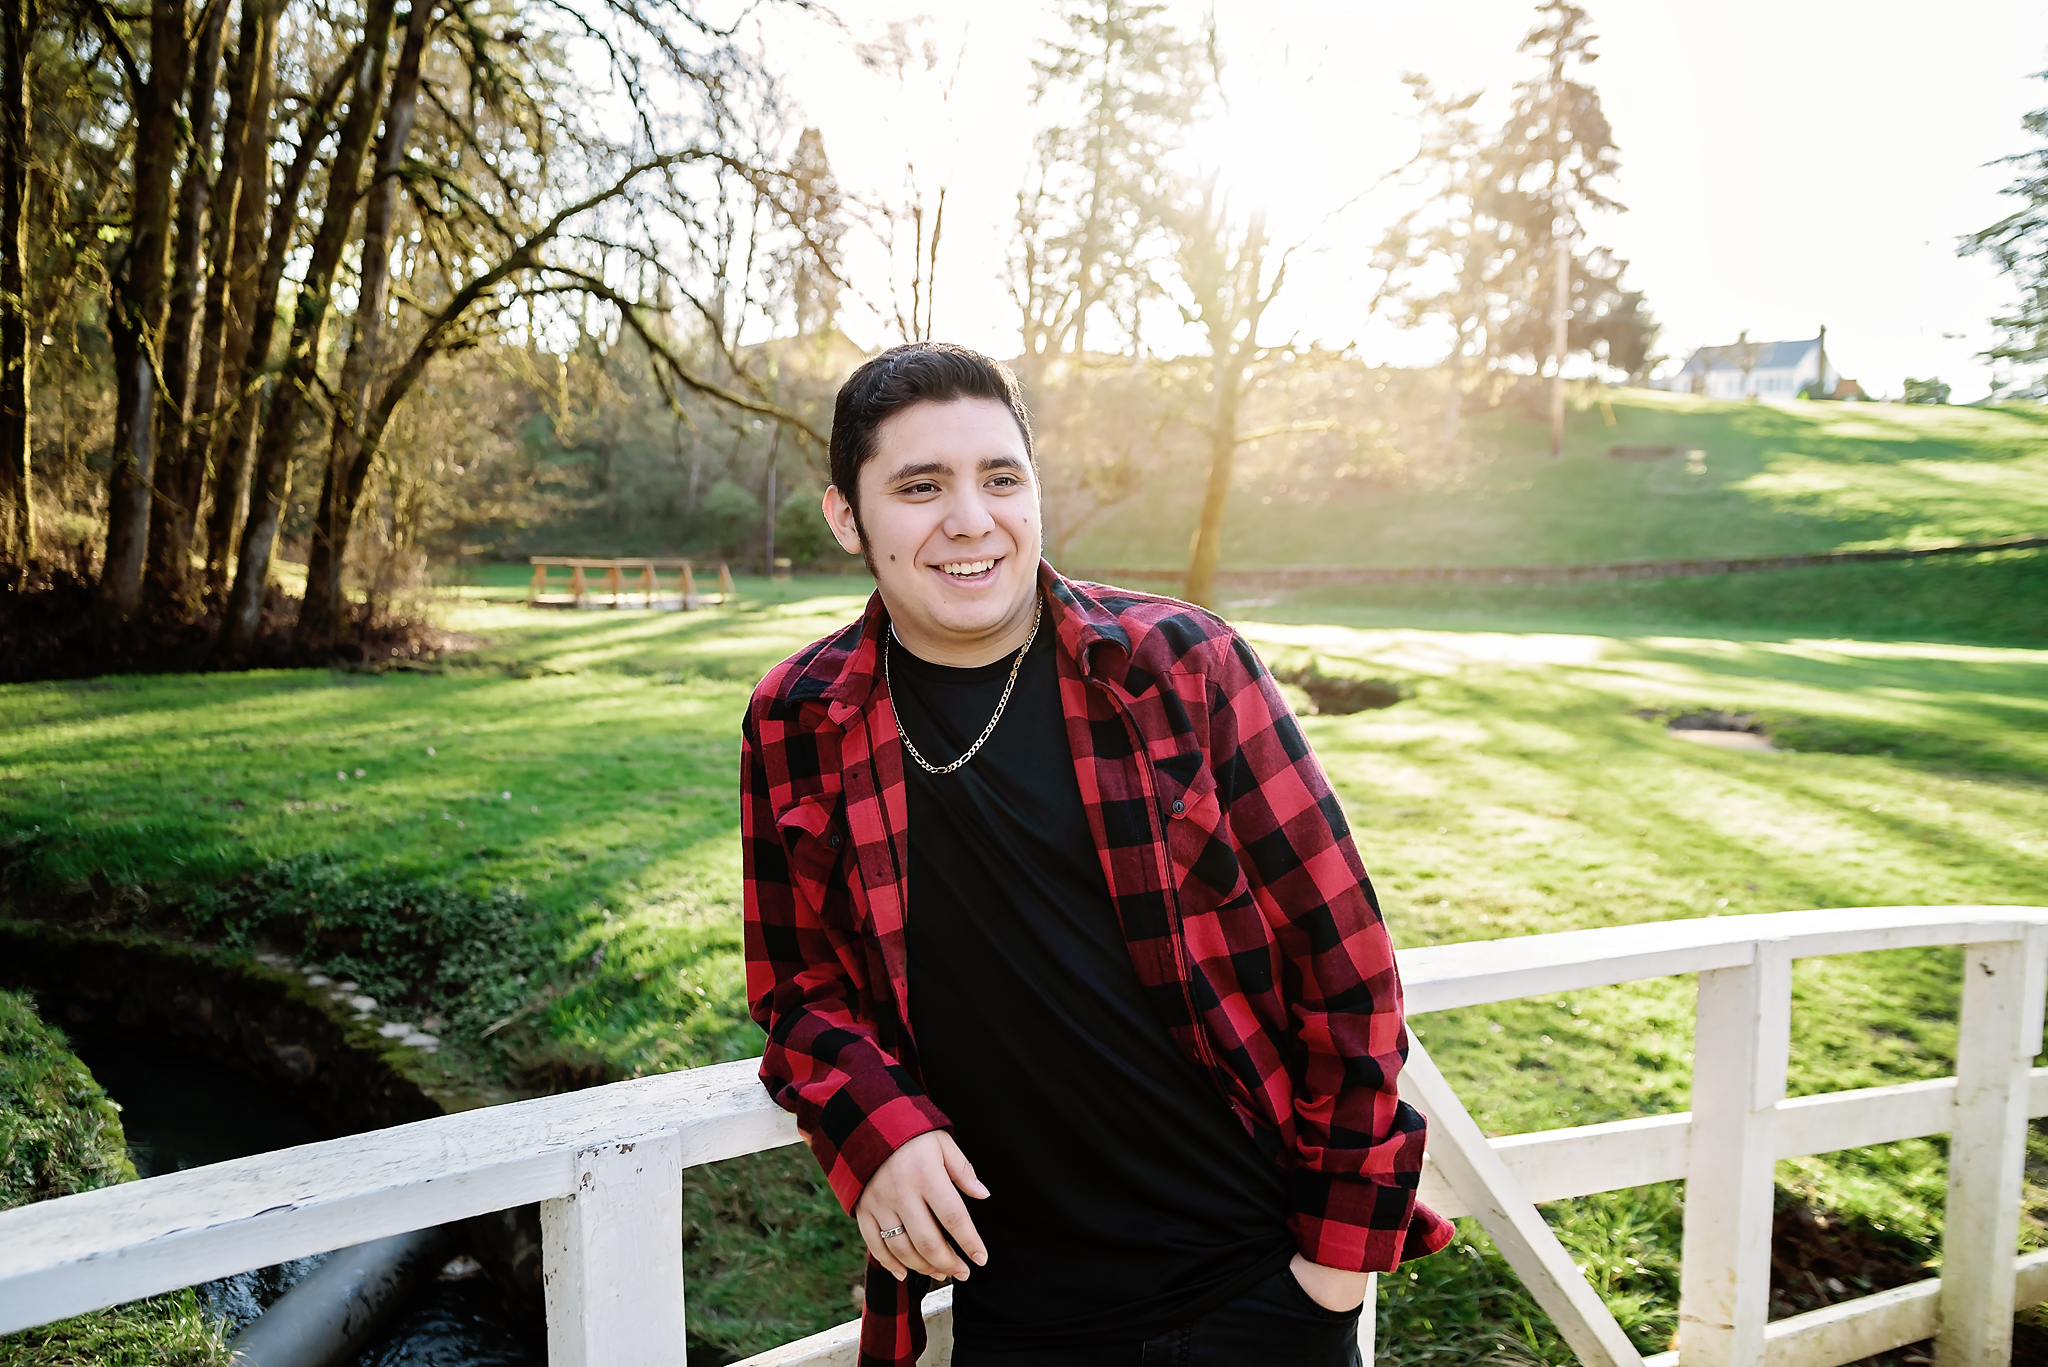 Newberg High School senior portraits (17).jpg